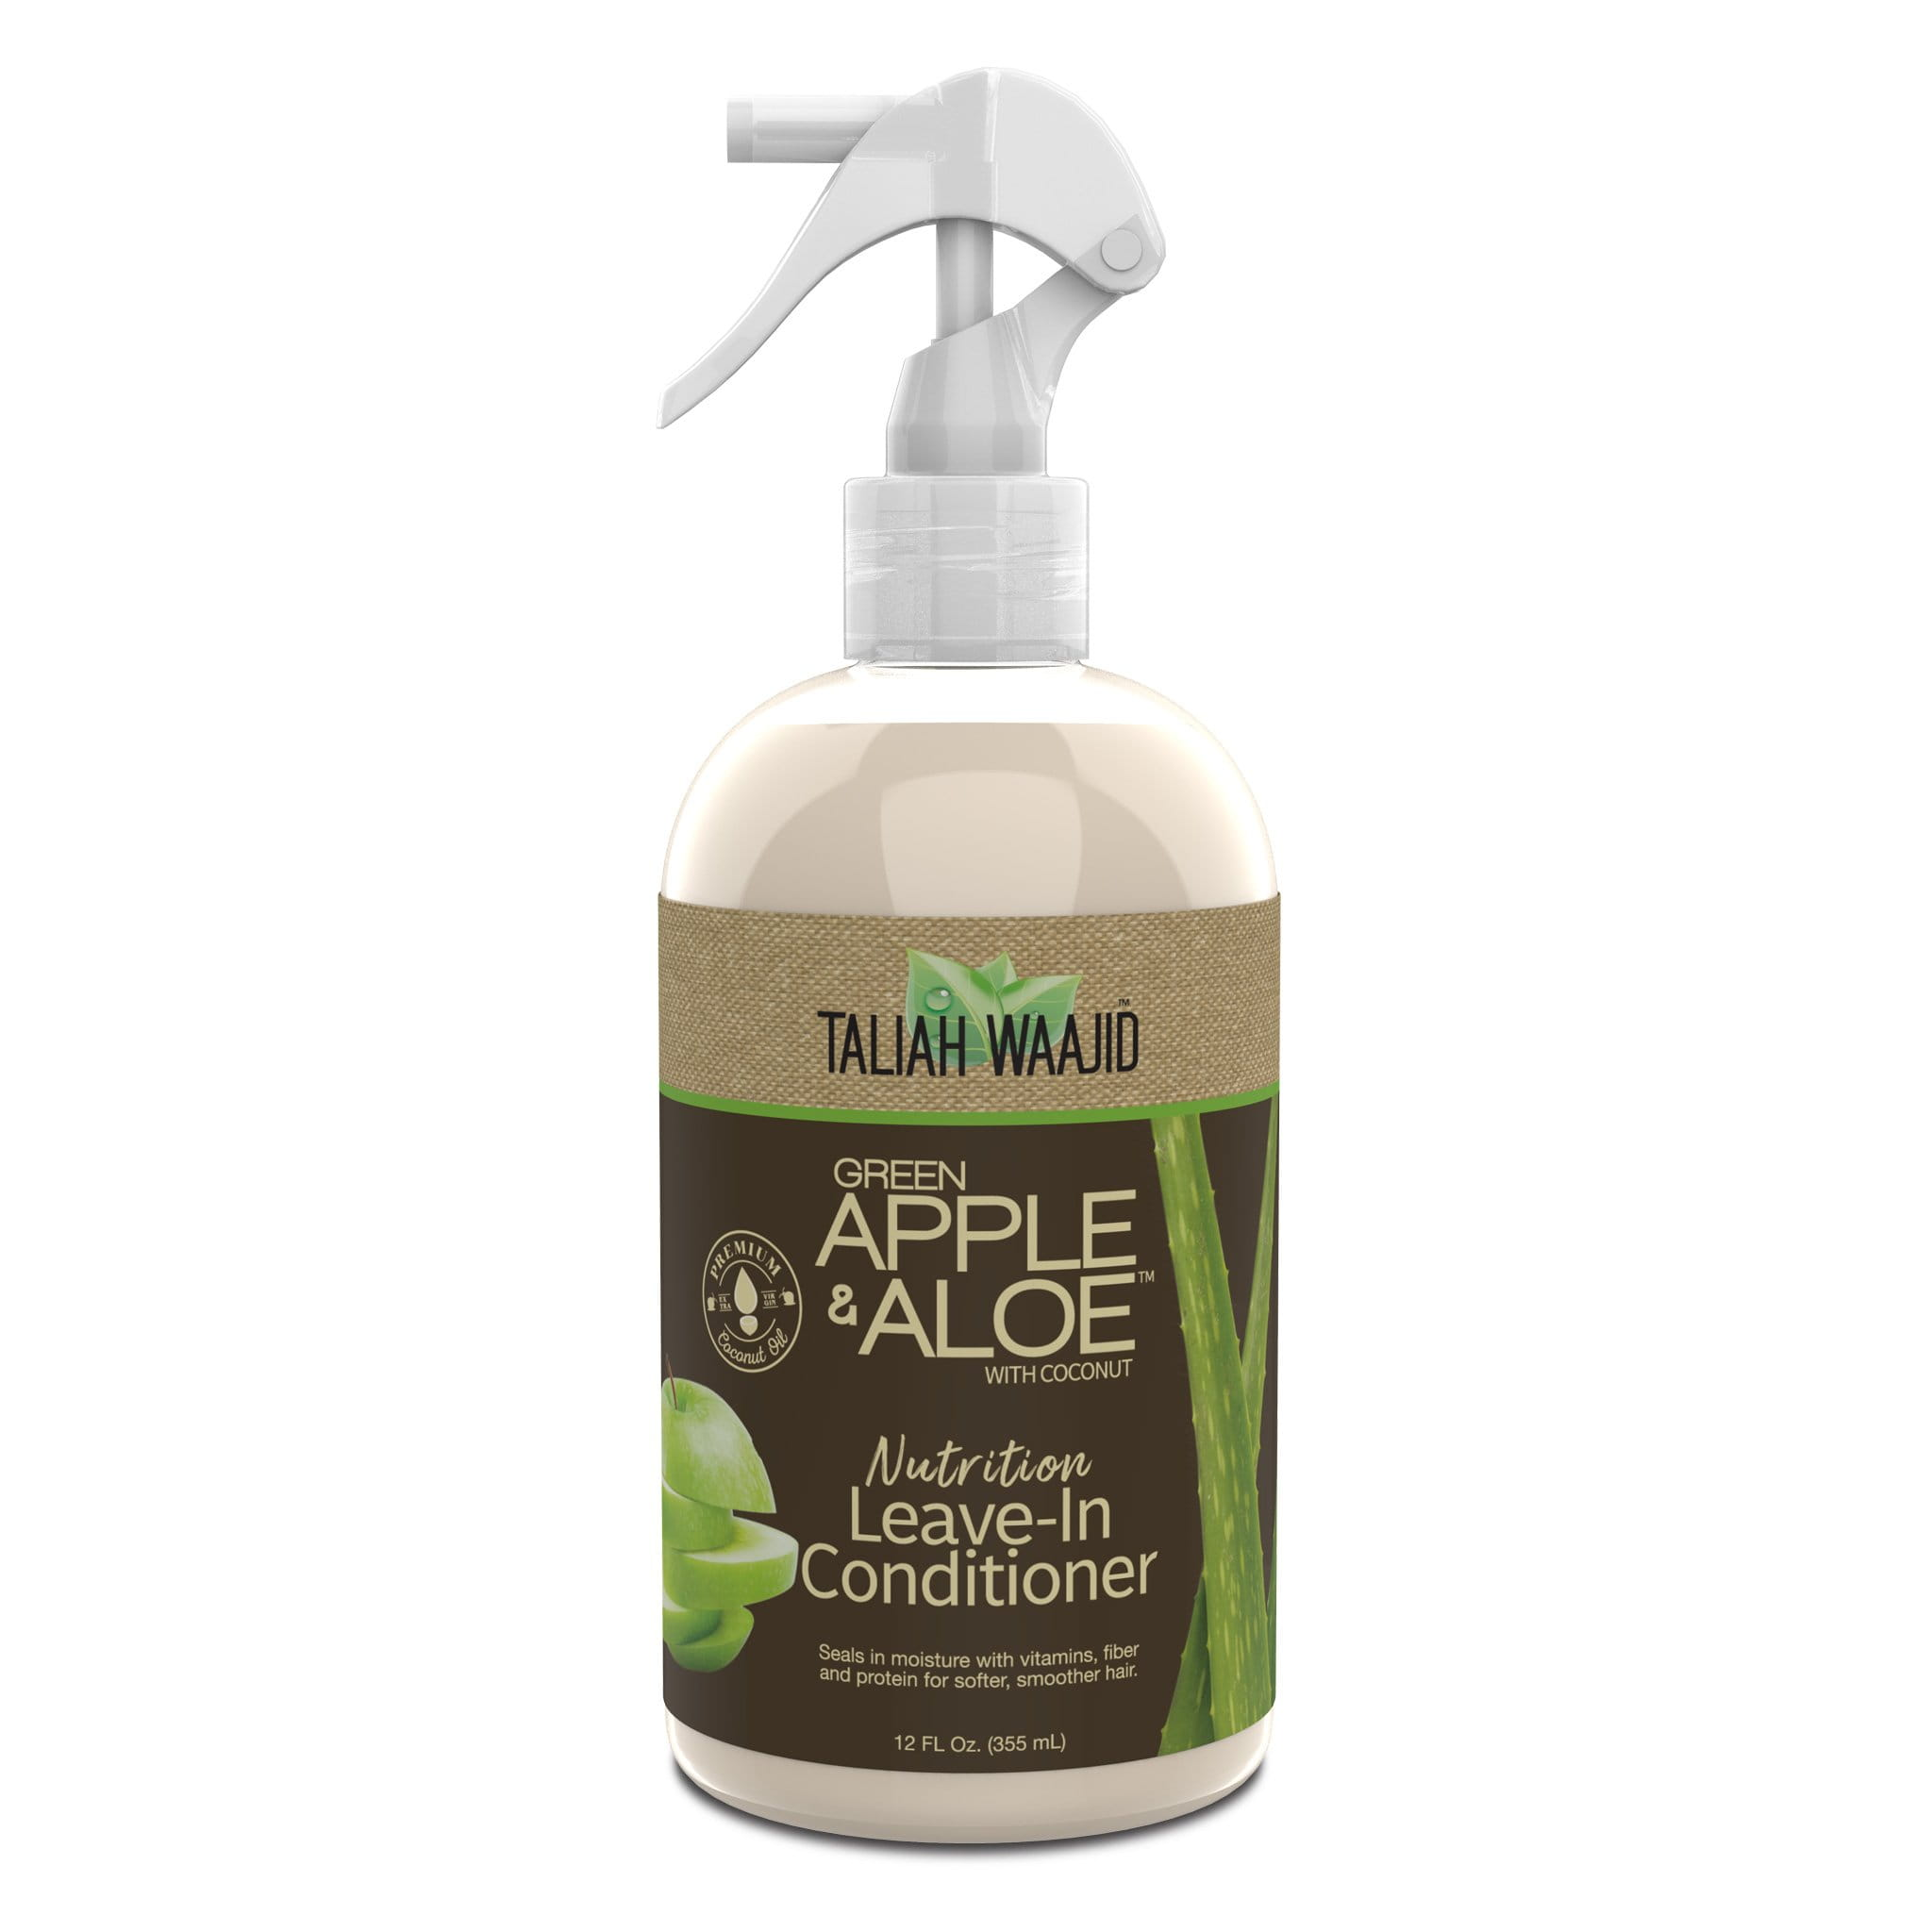 TW-Apple-Aloe-Nutrition-Leave-In-Conditioner-12oz.jpg